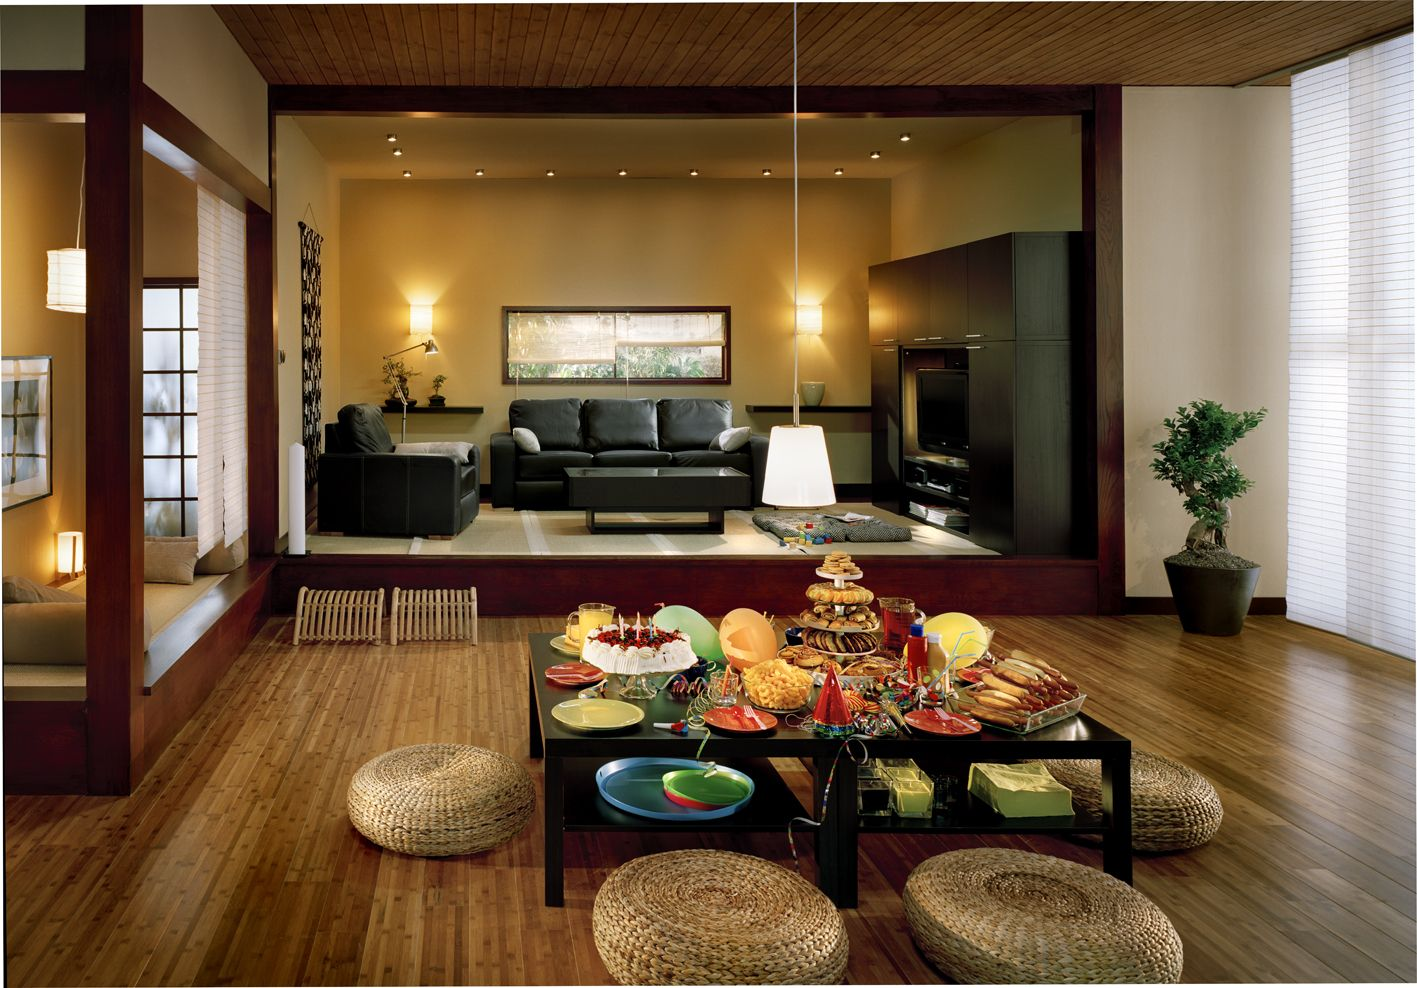 24 Zen Style Home Decorating Designs